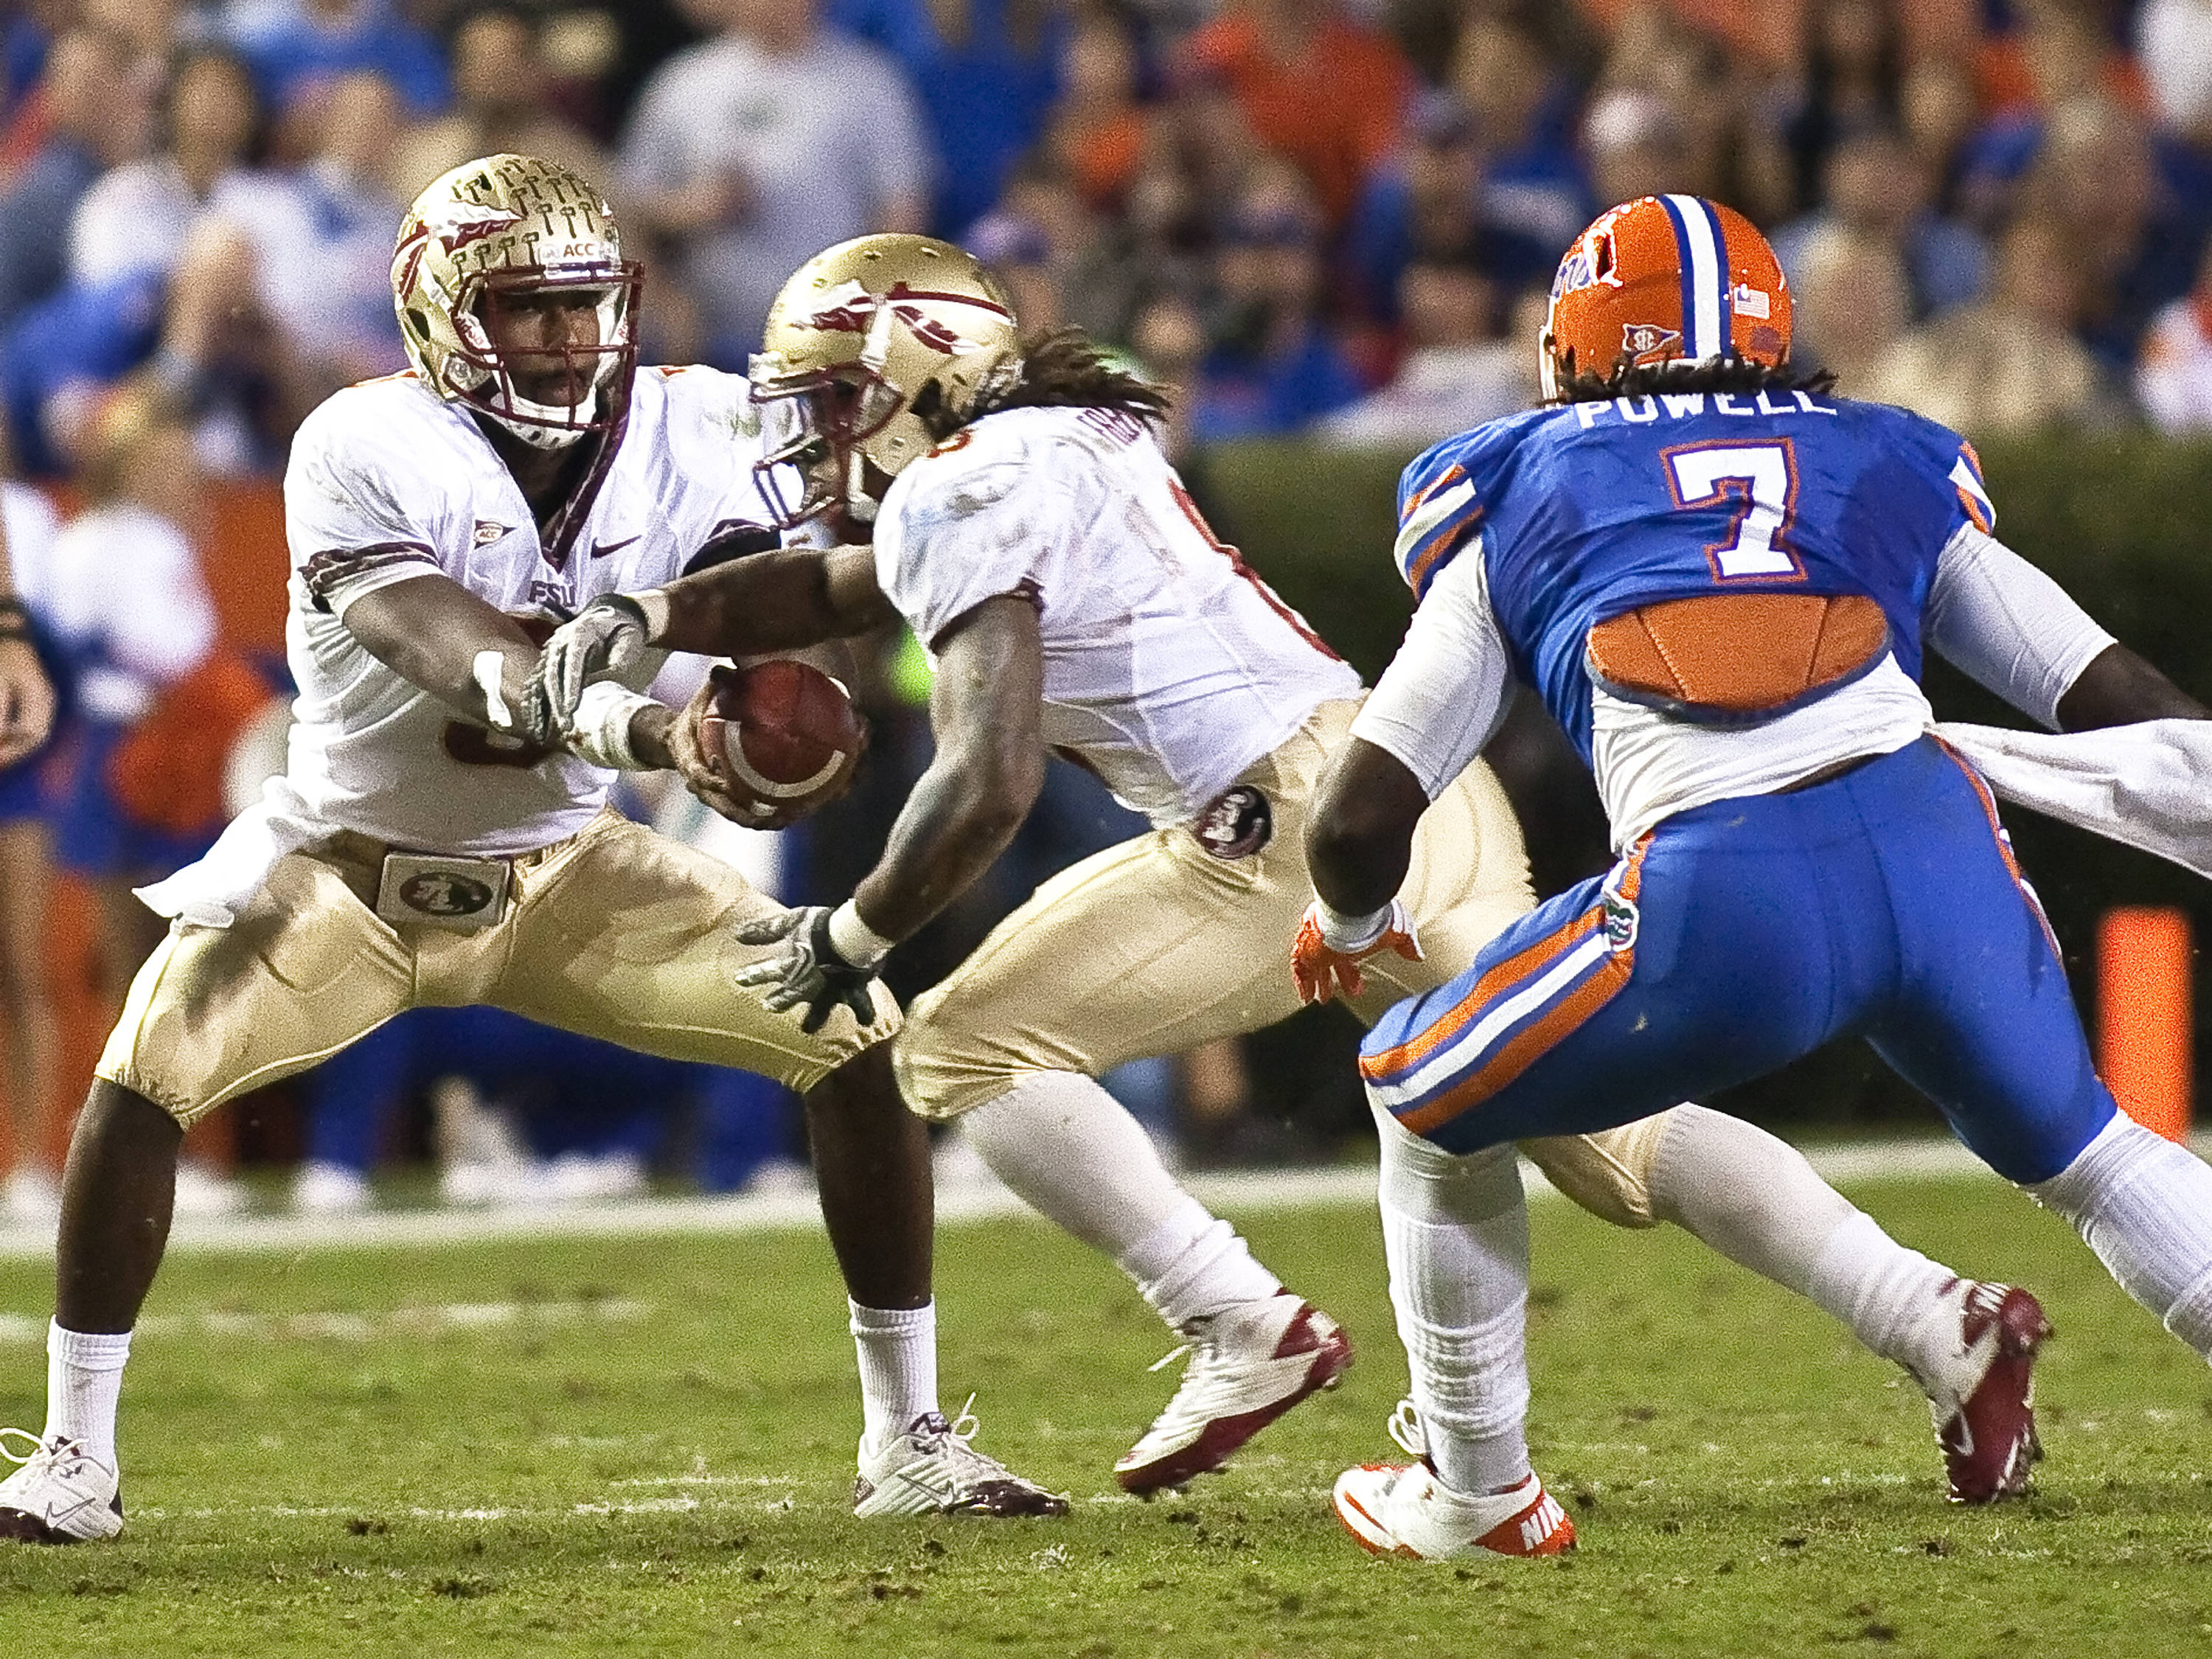 Quarterback EJ Manuel (3) handing off to Devonta Freeman (8),FSU vs Florida, 11/26/2011